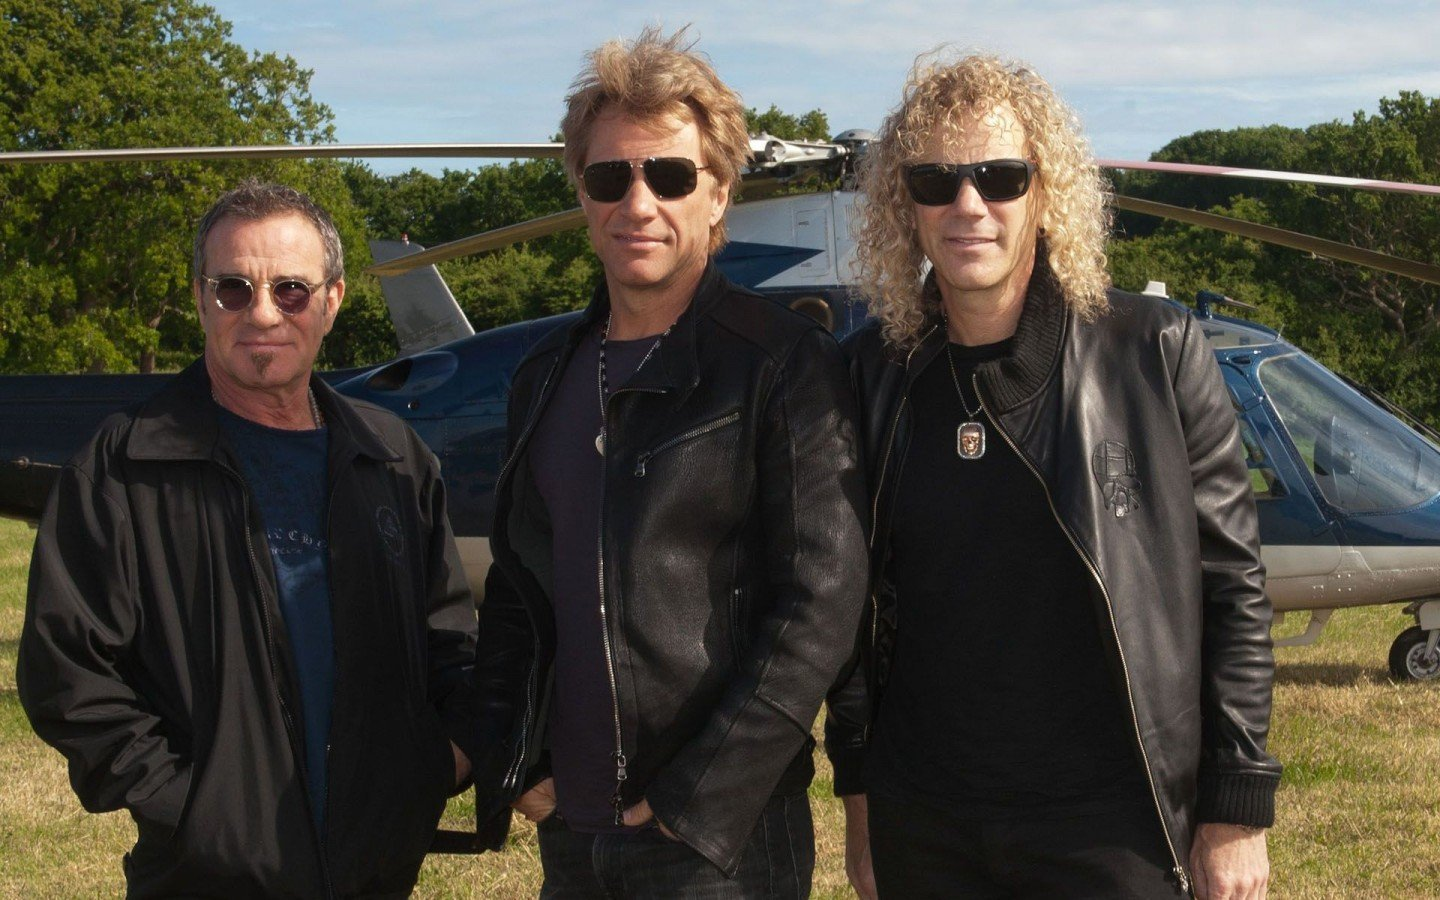 Tico-Torres-Jon-Bon-Jovi-And-David-Bryan-Arrive-Helicopter-The-Isle-Of-Wight-900x1440